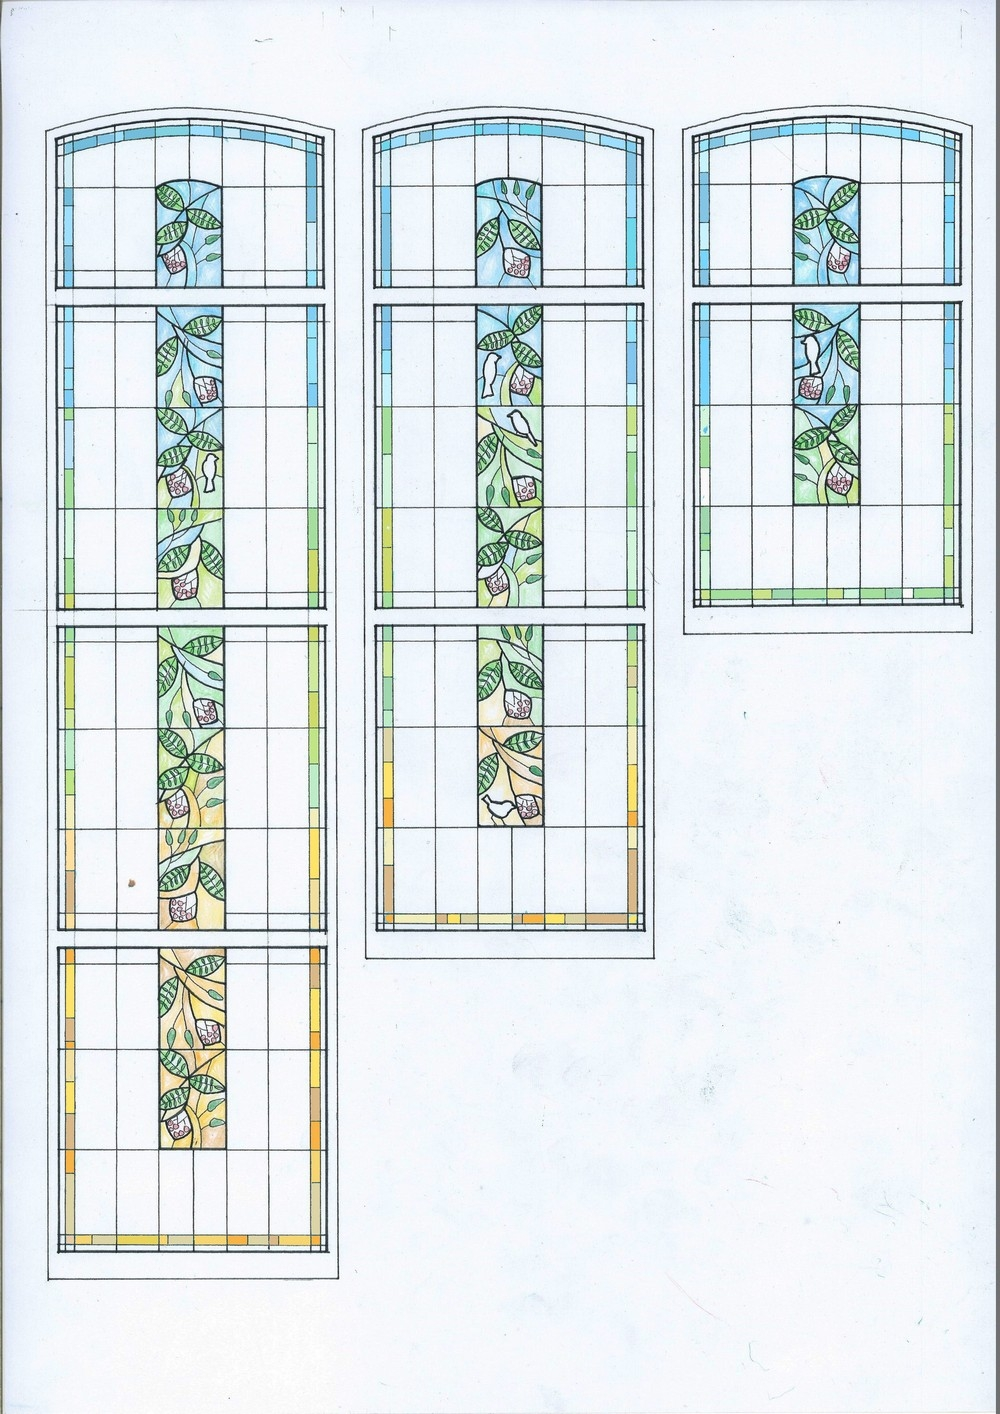 New Bespoke Stained Glass For 1920 S Staircase Window   Staircase Window Glass Design   Geometric   Architecture   Flower   Residential   Glass Brick